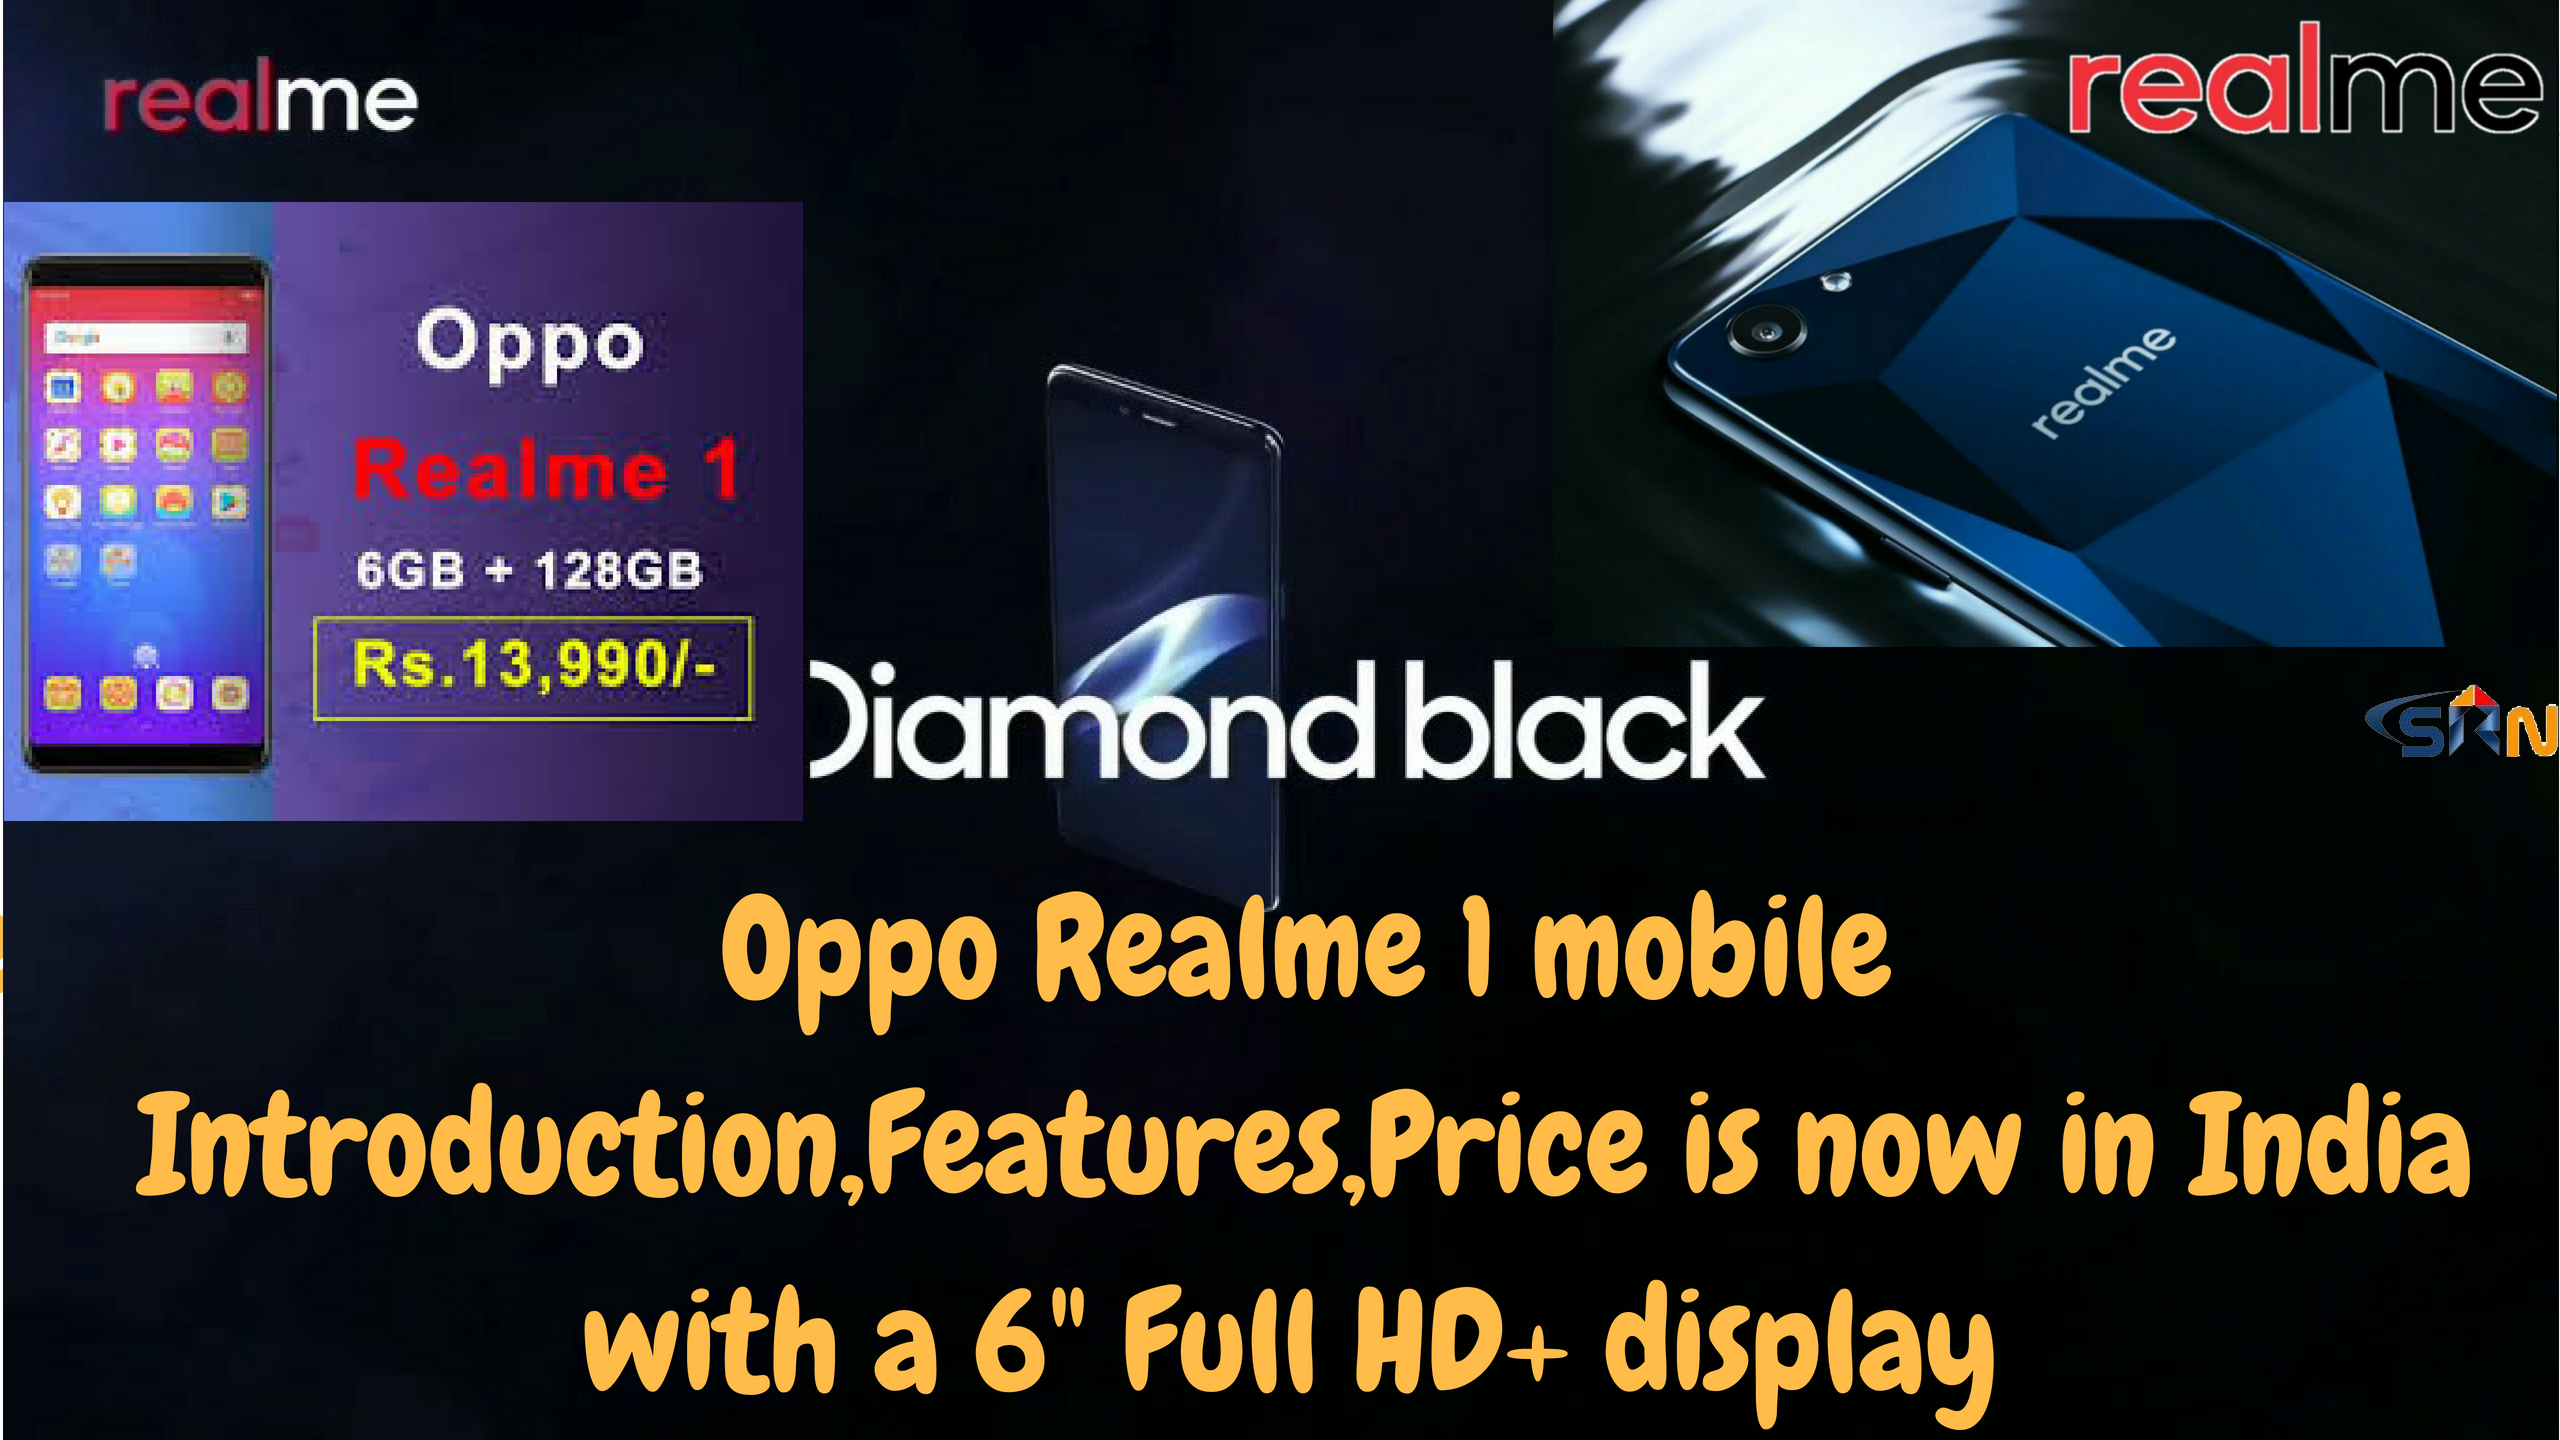 Oppo Realme 1 mobile Introduction,Features,Price is now in India with a 6 Full HD+ display